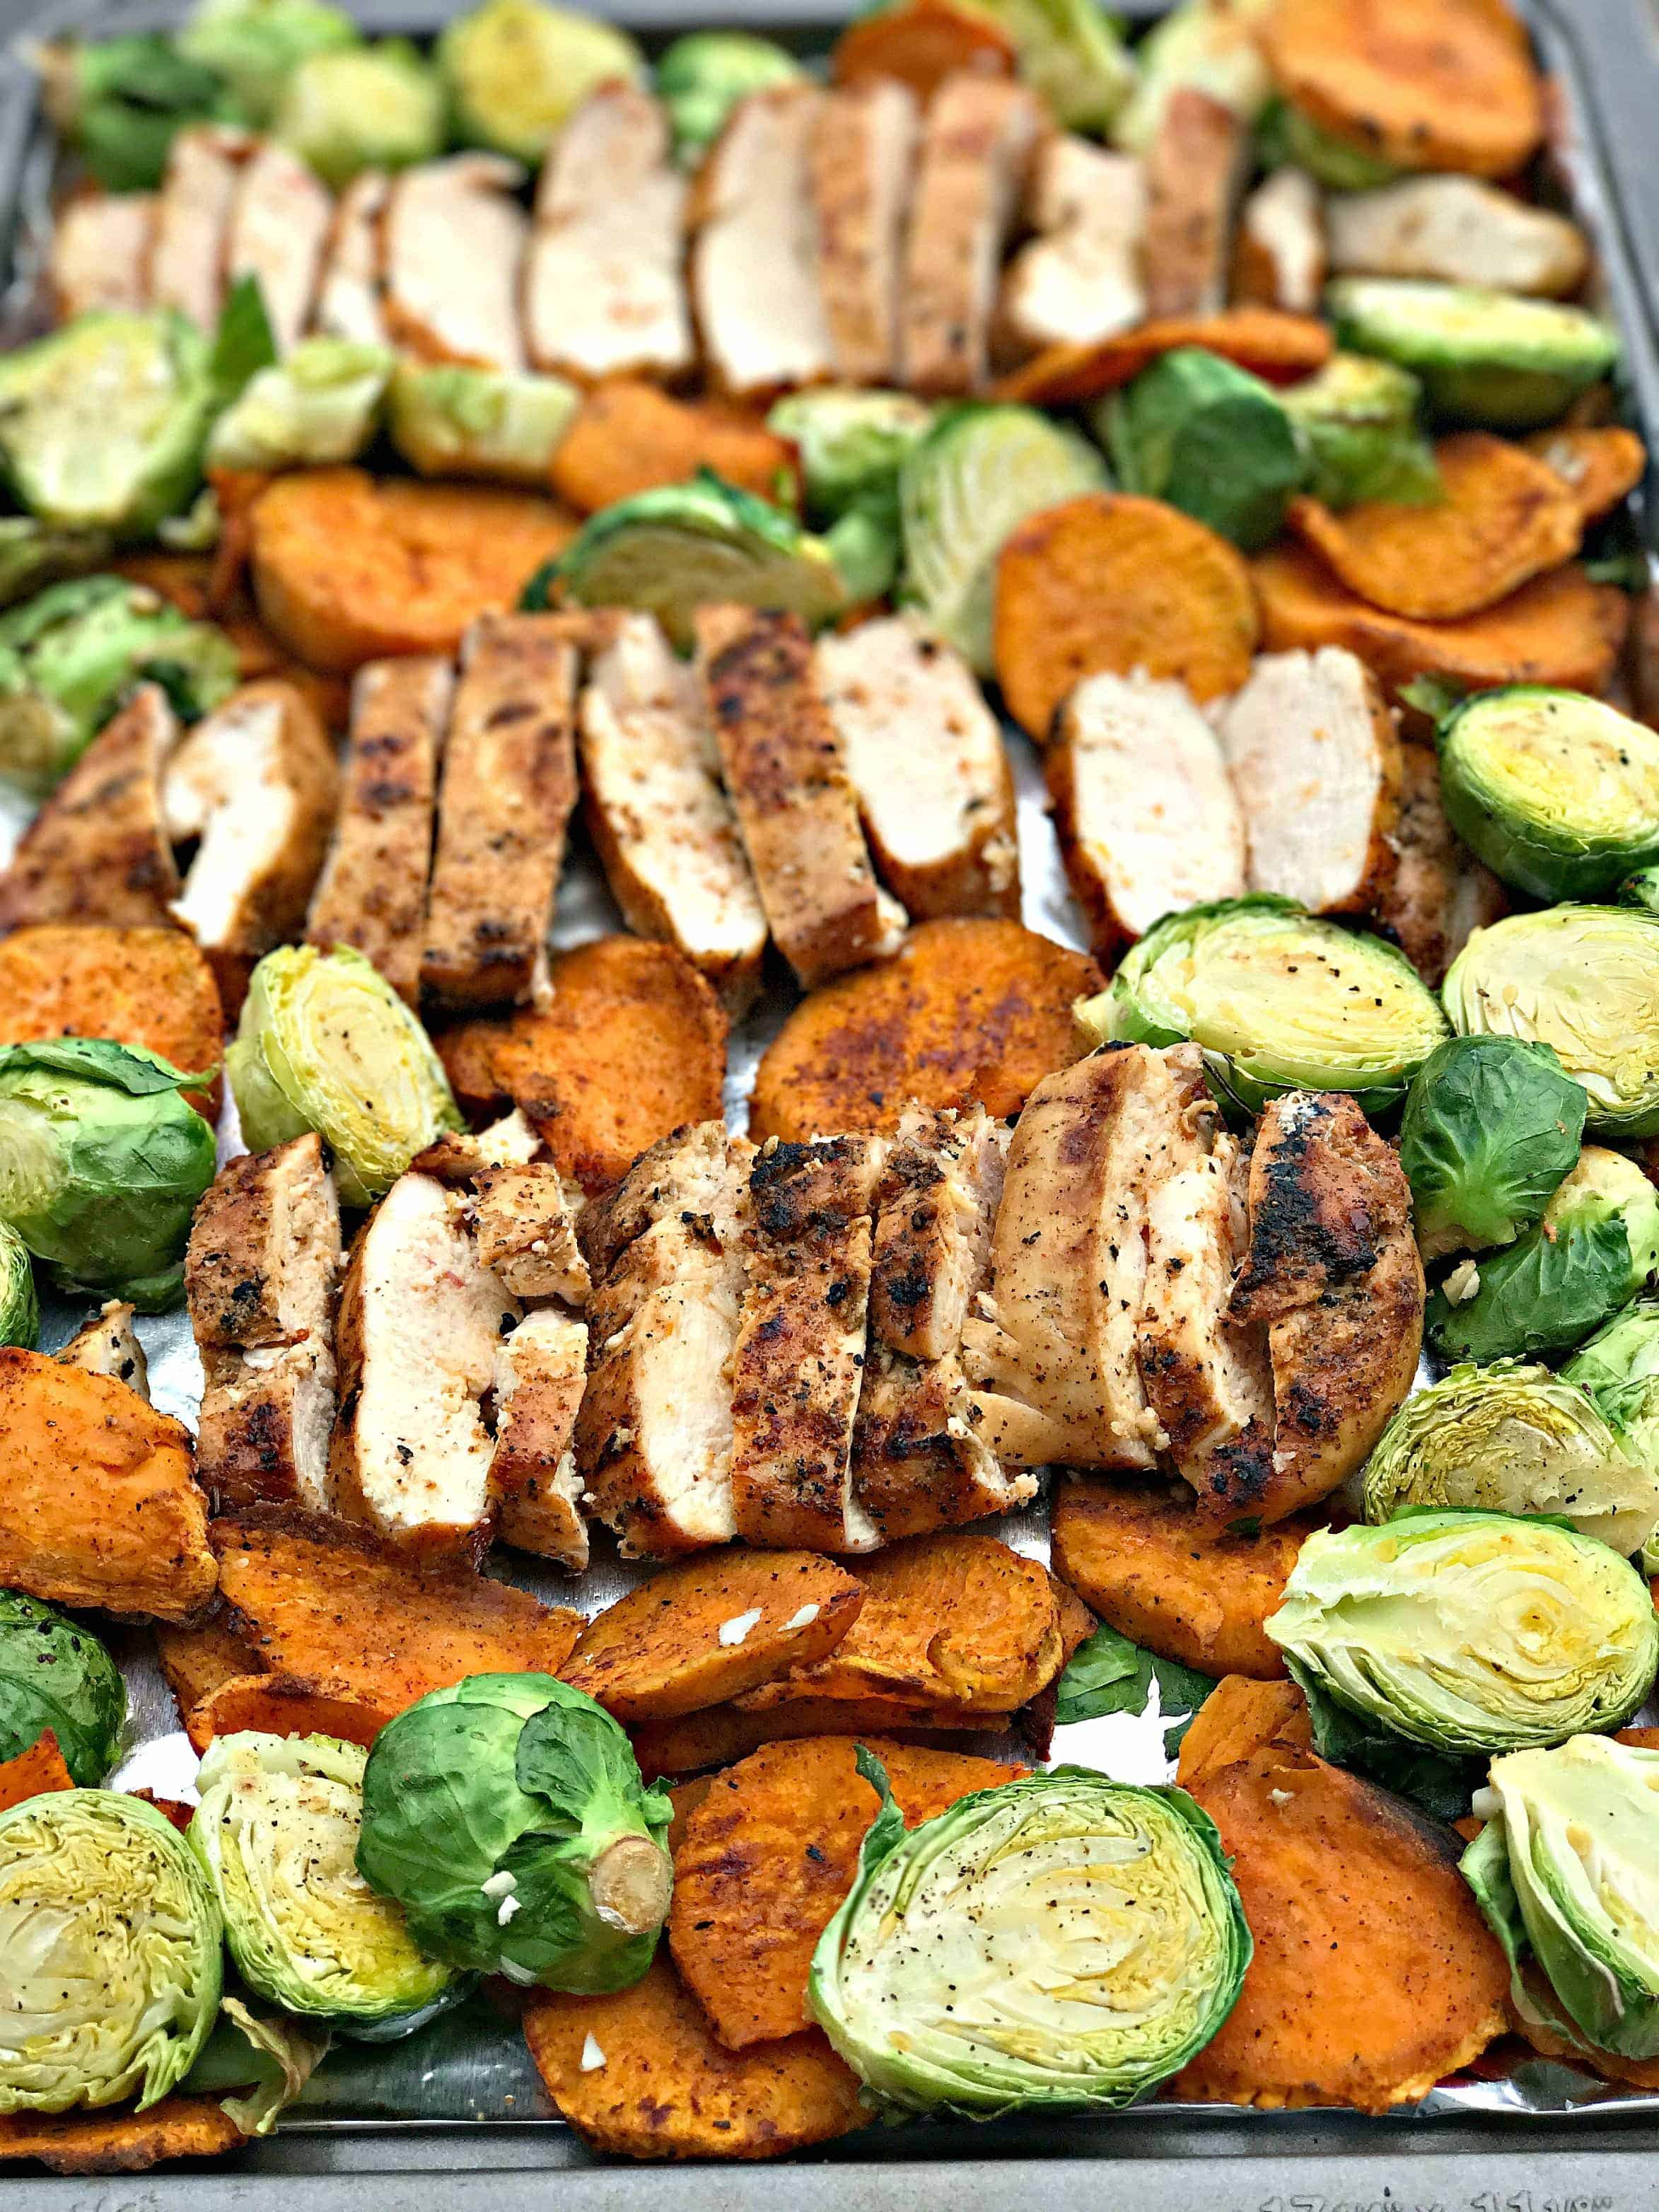 sliced chicken breasts, sweet potatoes, brussels sprouts on a baking sheet